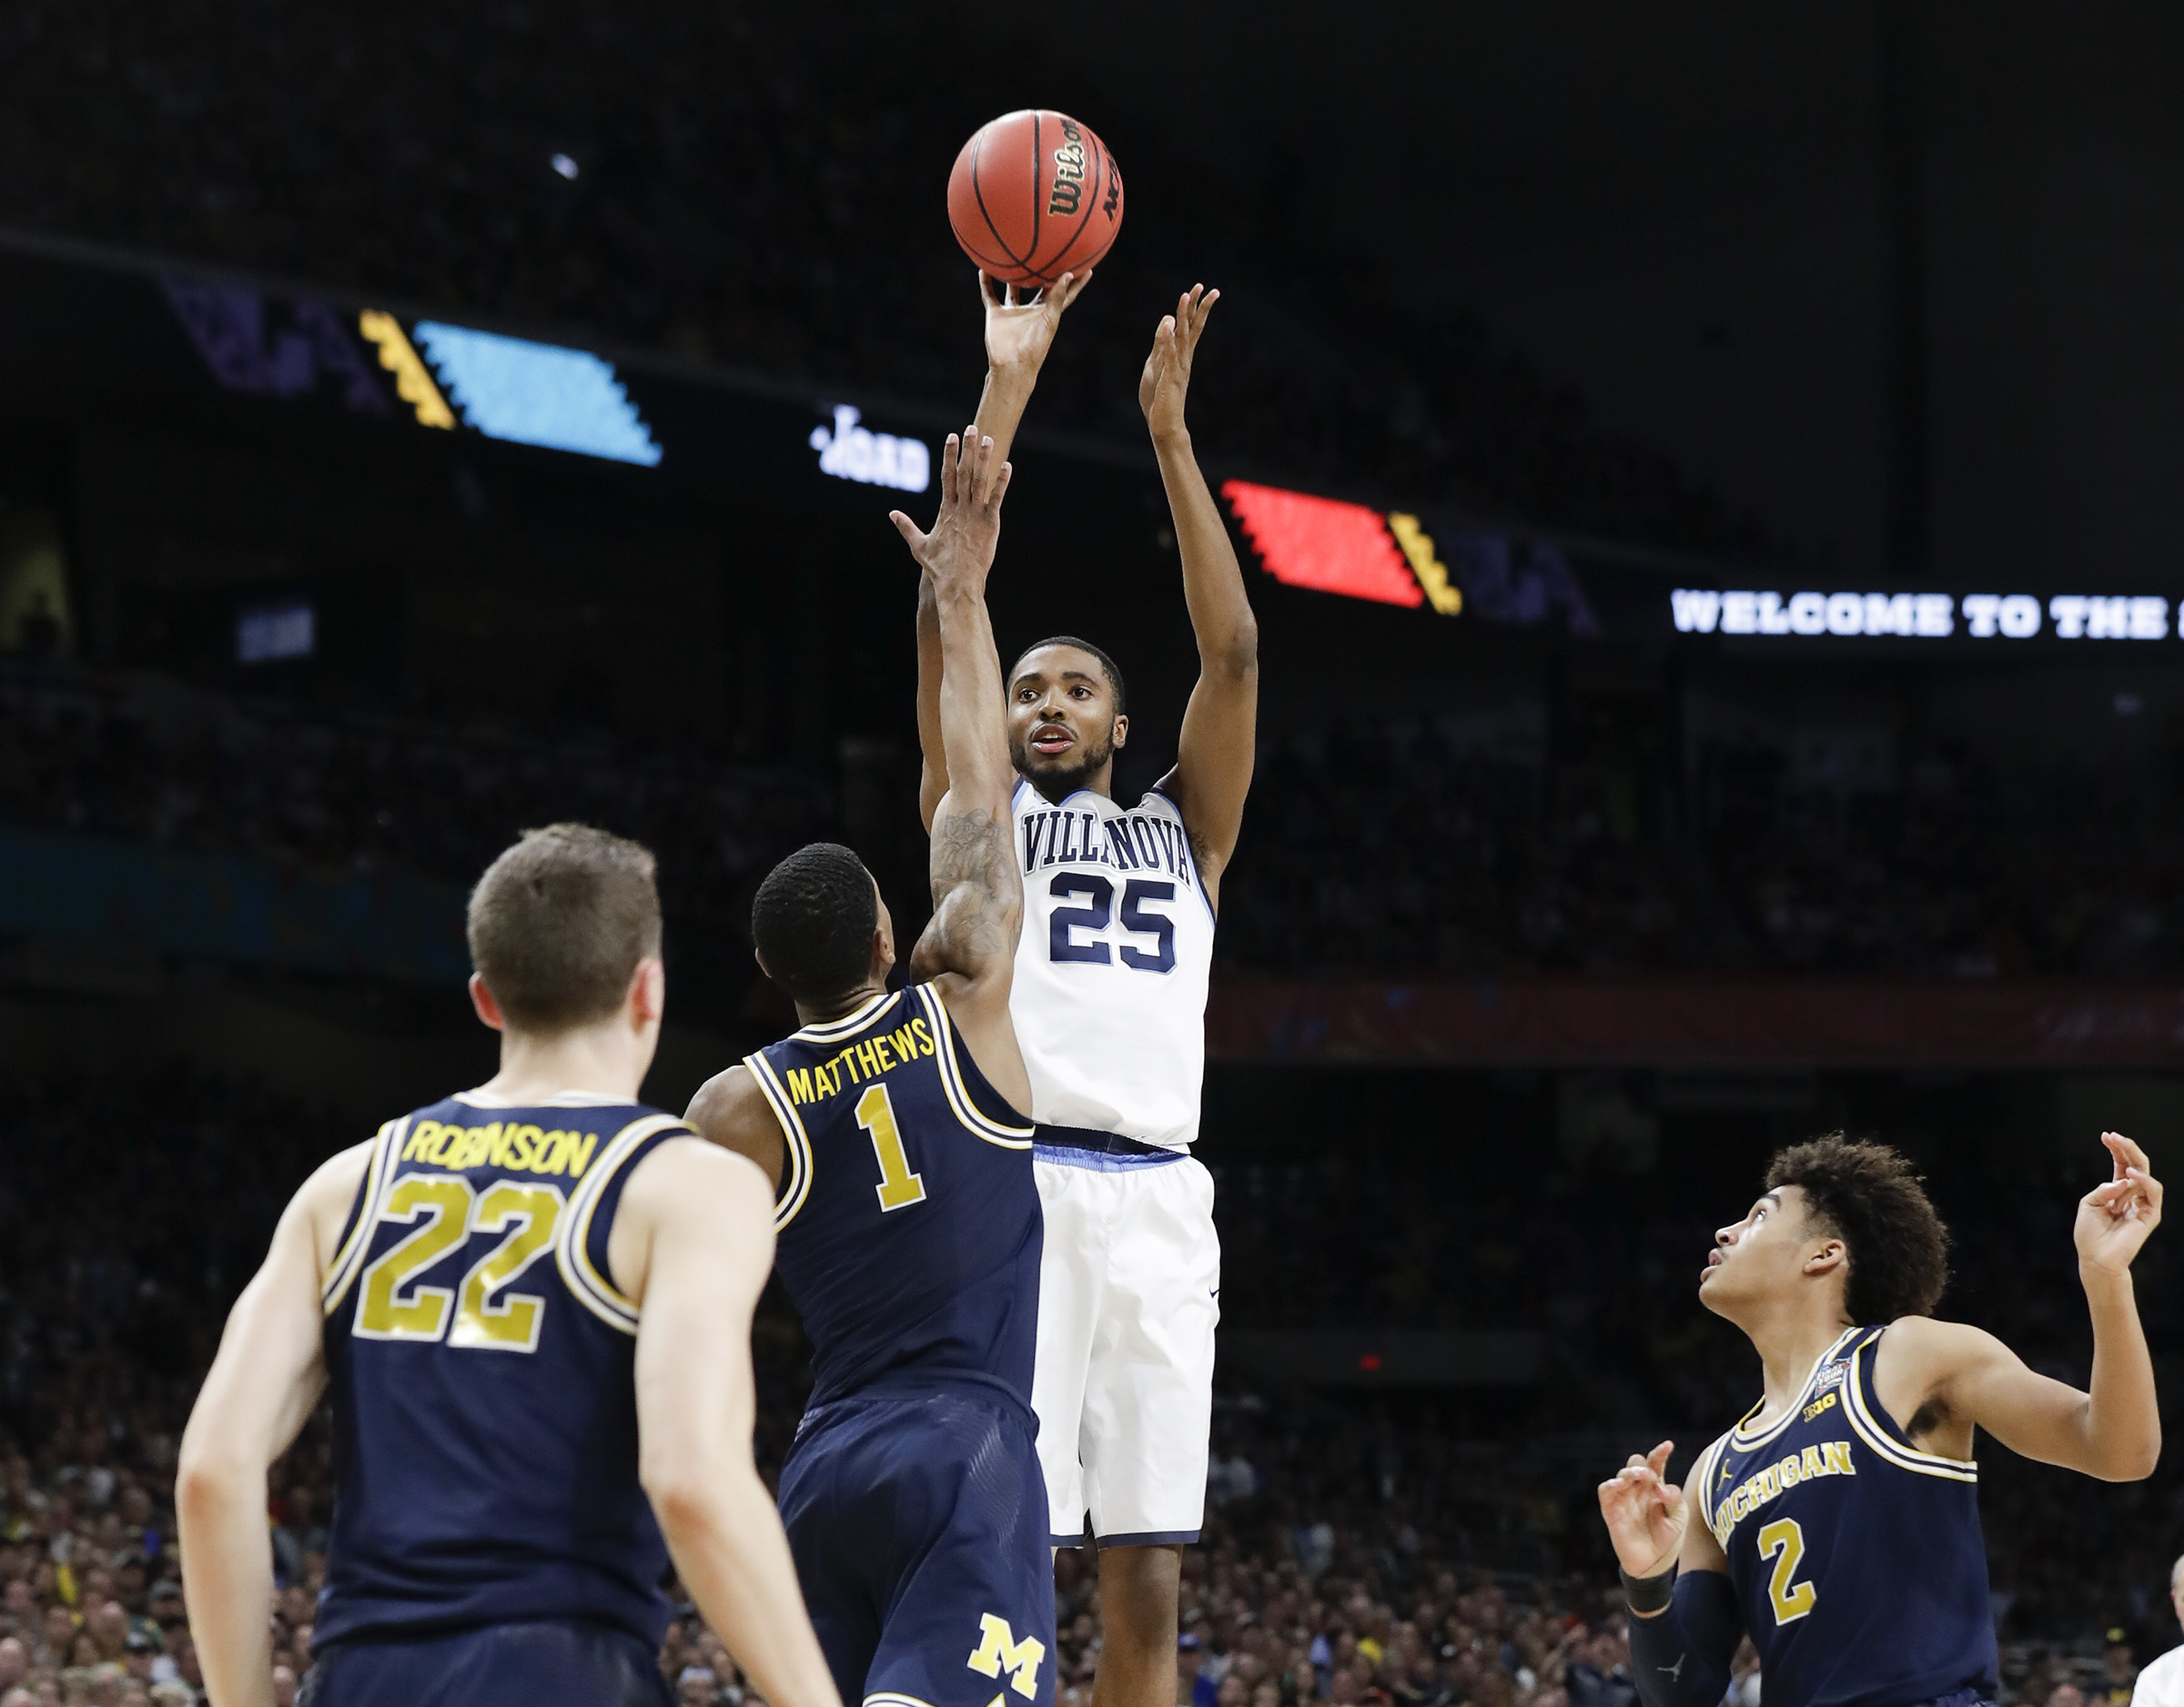 Mikal Bridges took and made more 3-pointers than any other Villanova player last season.